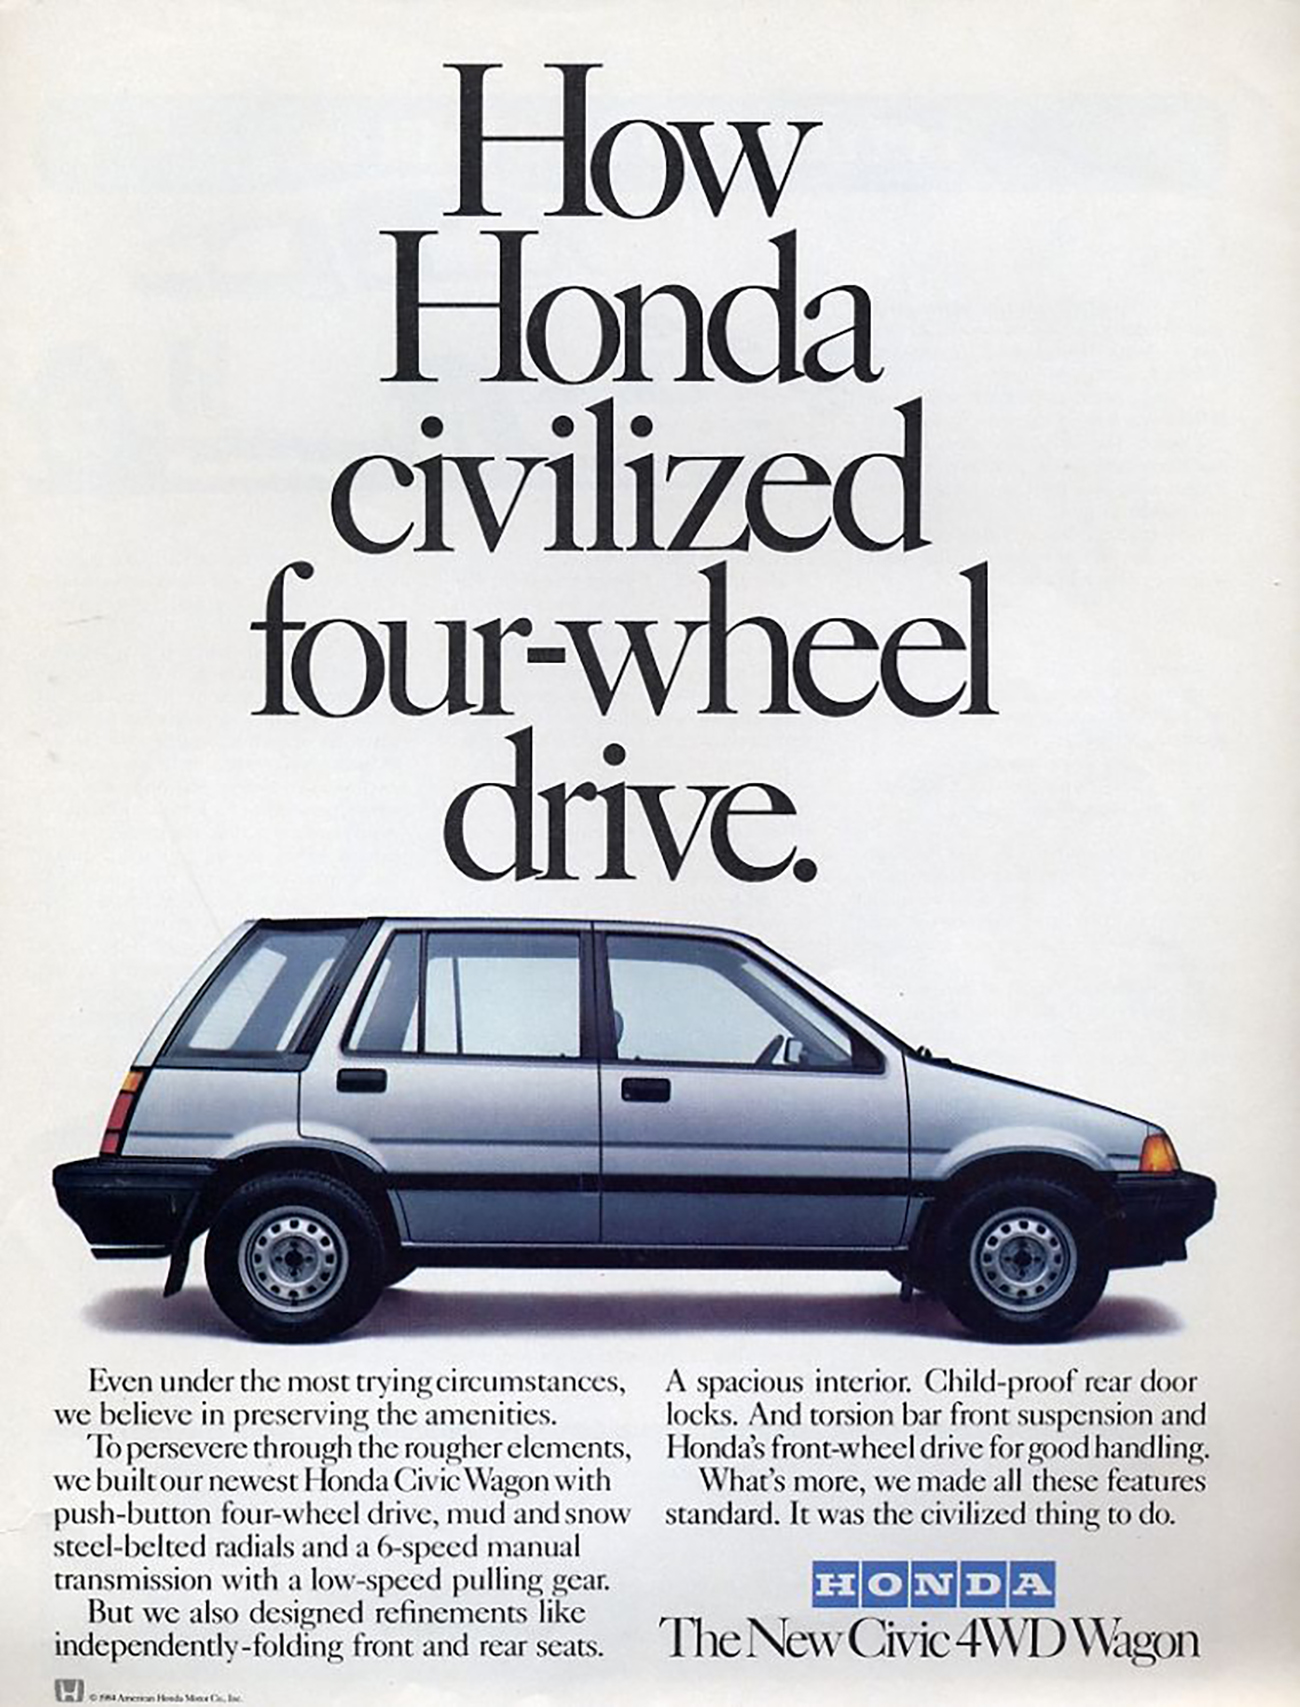 1984 Honda Civic 4WD Wagon, Real-Time 4WD